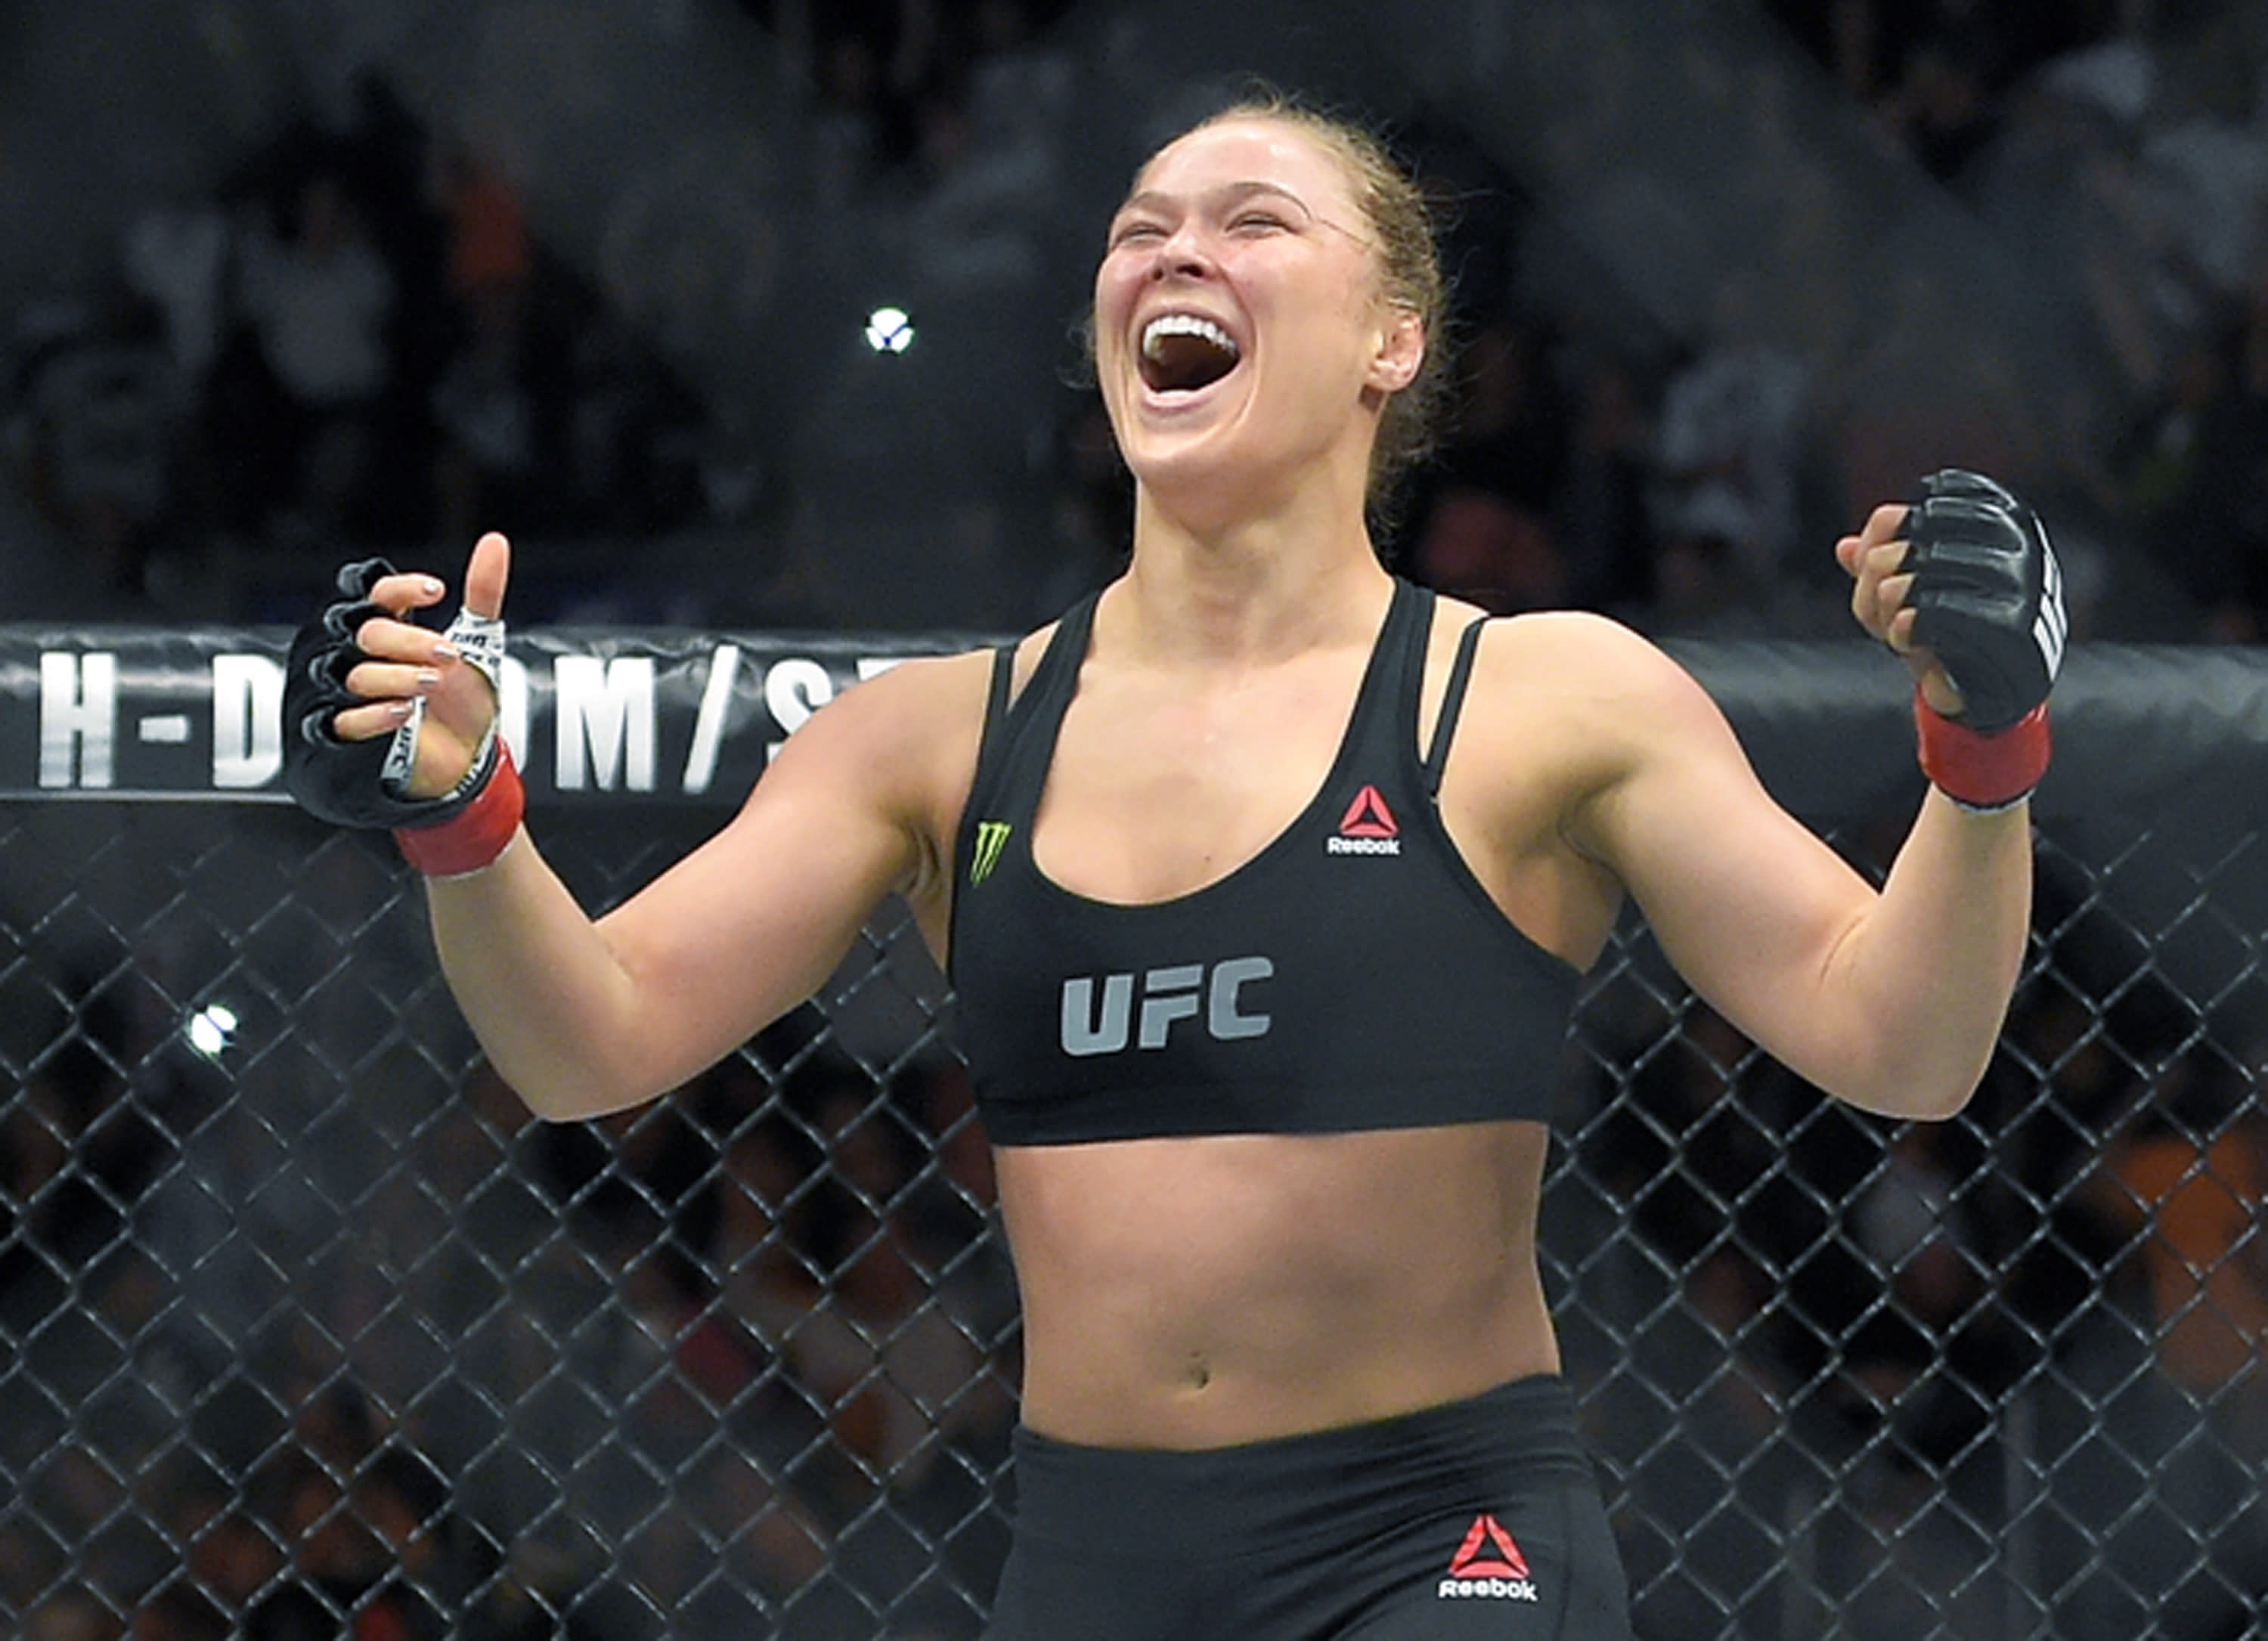 UFC's Reebok deal will pay fighters based on cage experience